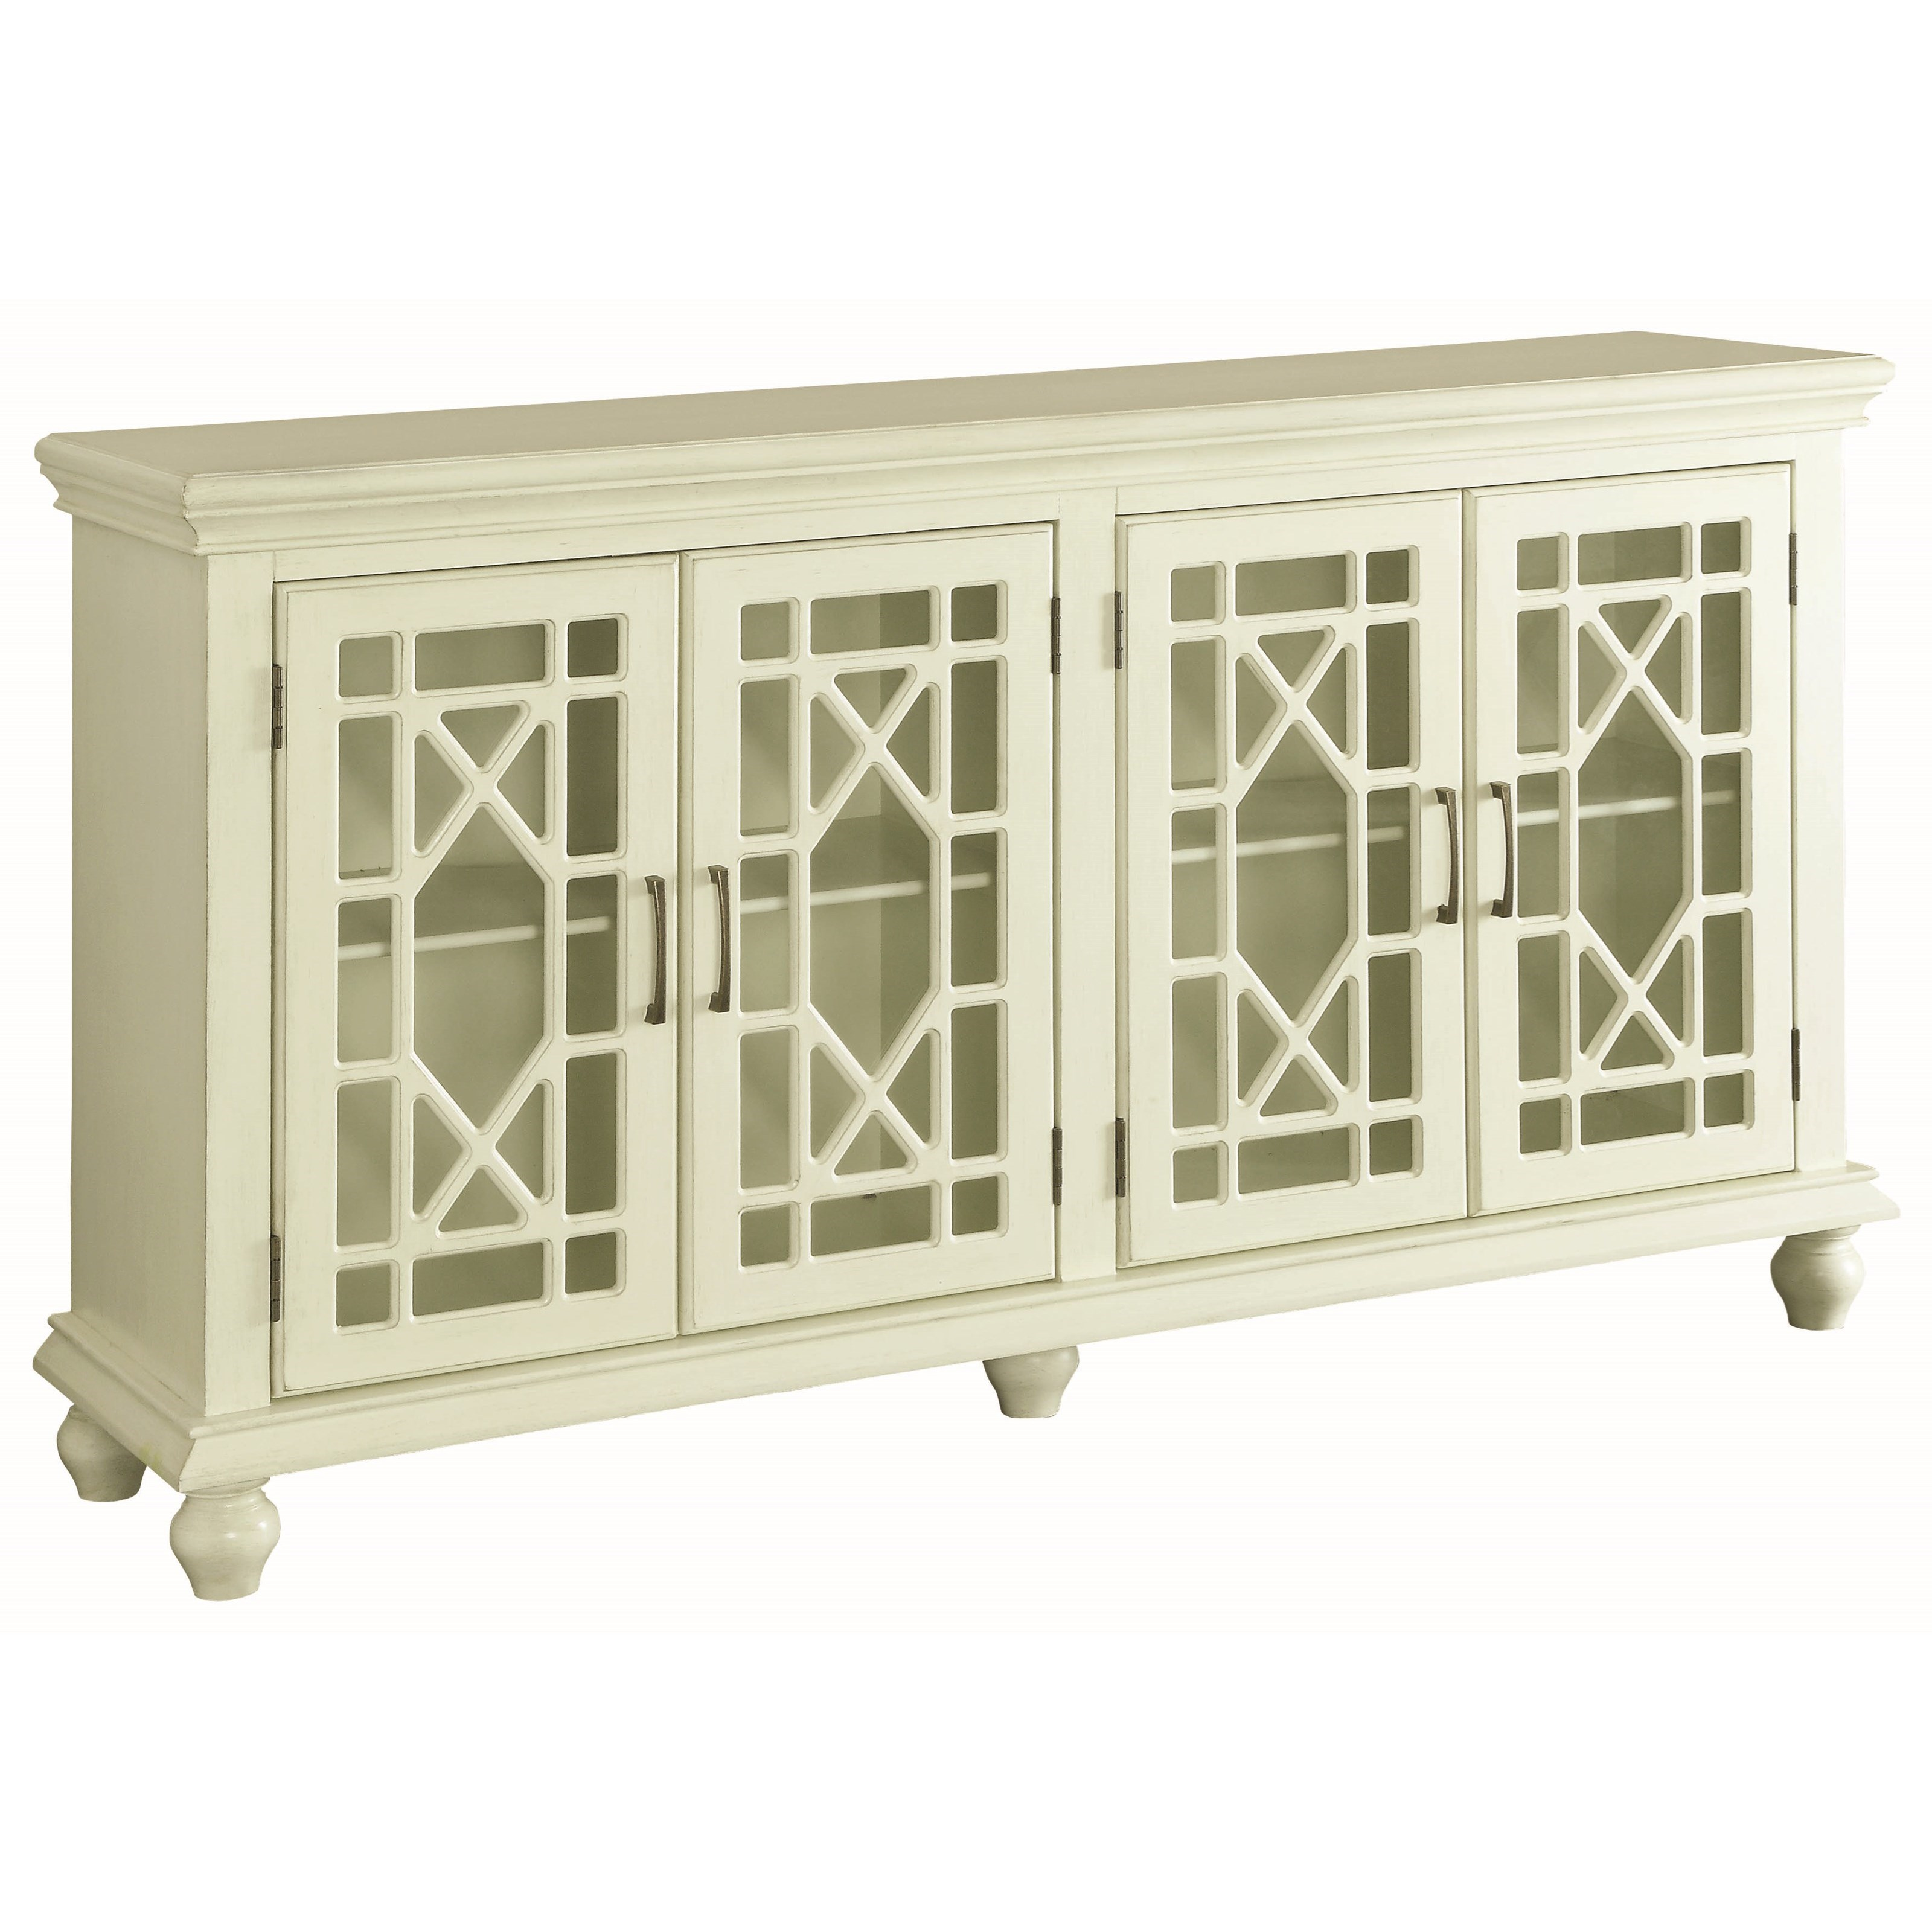 coaster accent cabinets cabinet with lattice doors value products color tables and small modern side table pineapple beach umbrella vintage home decor carpet reducer strip